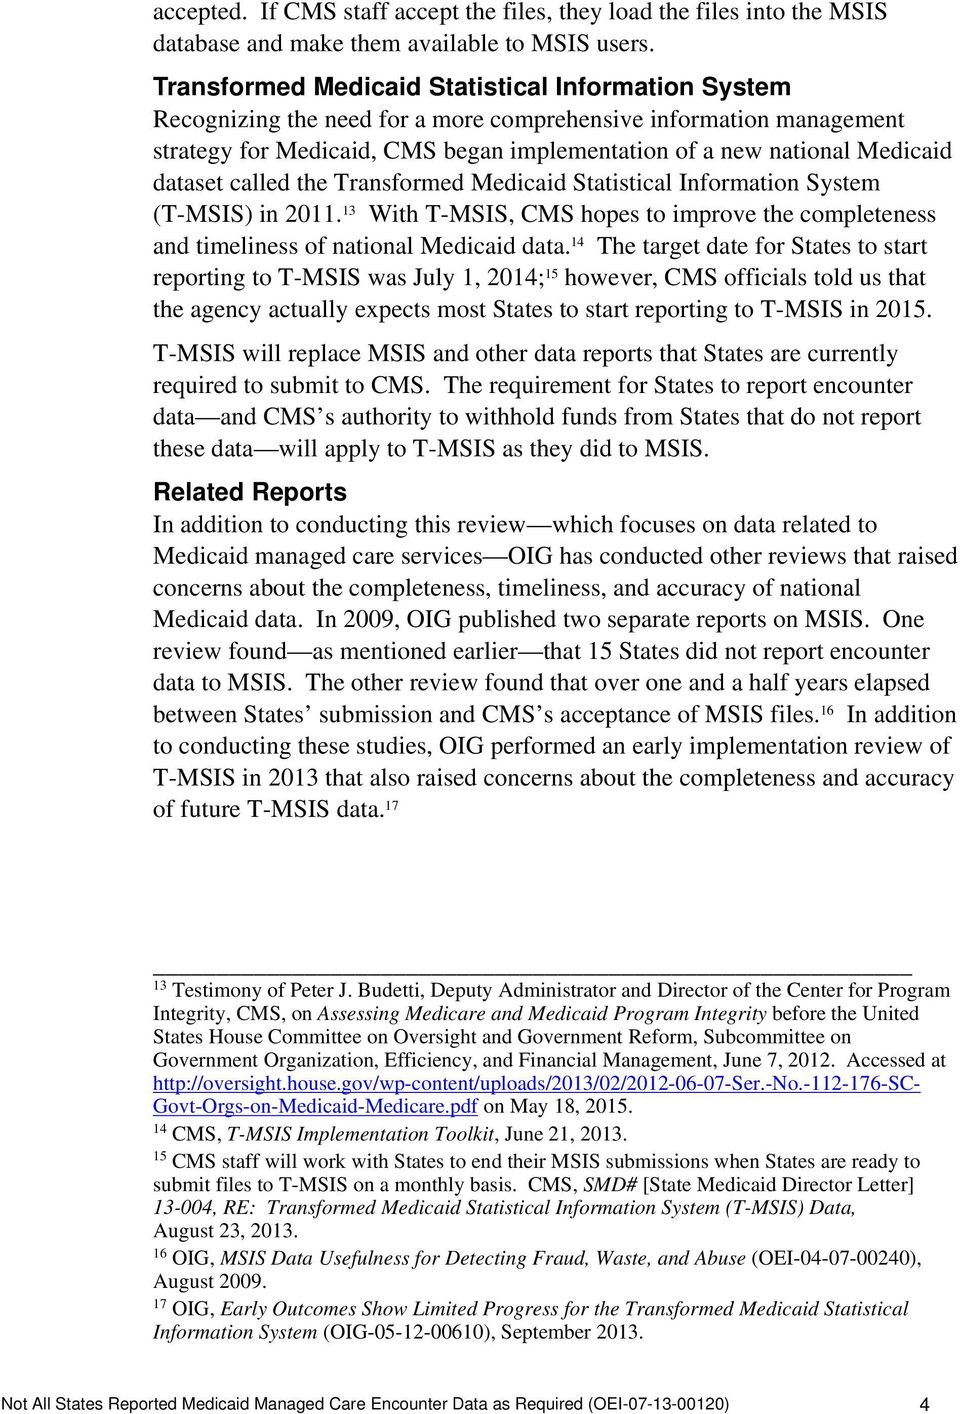 dataset called the Transformed Medicaid Statistical Information System (T-MSIS) in 2011. 13 With T-MSIS, CMS hopes to improve the completeness and timeliness of national Medicaid data.